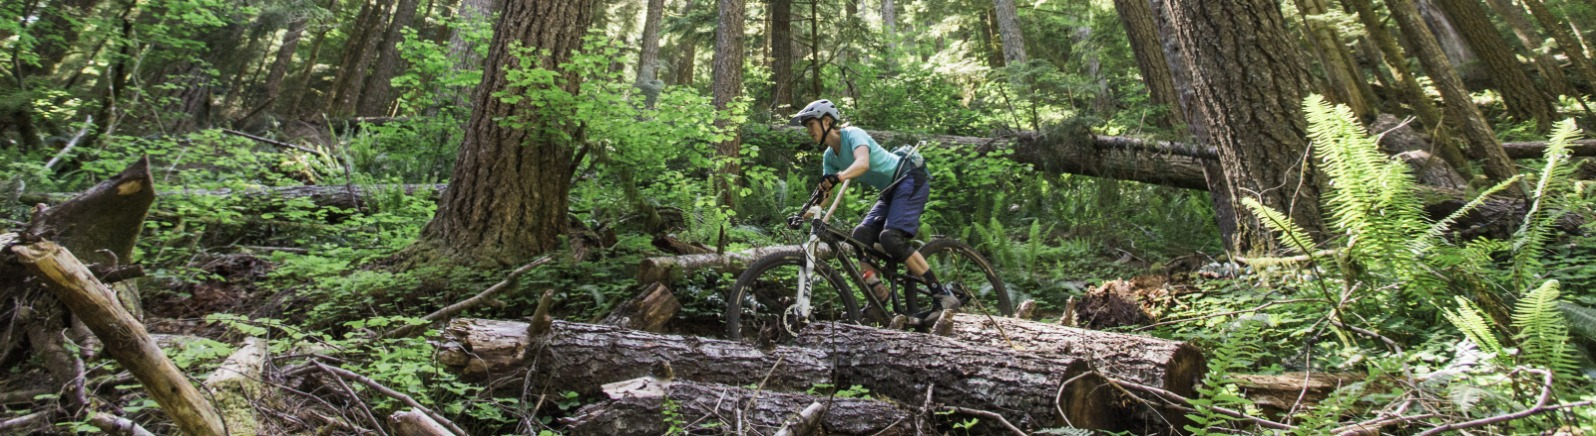 Female Mountain Biker on Forest Trail